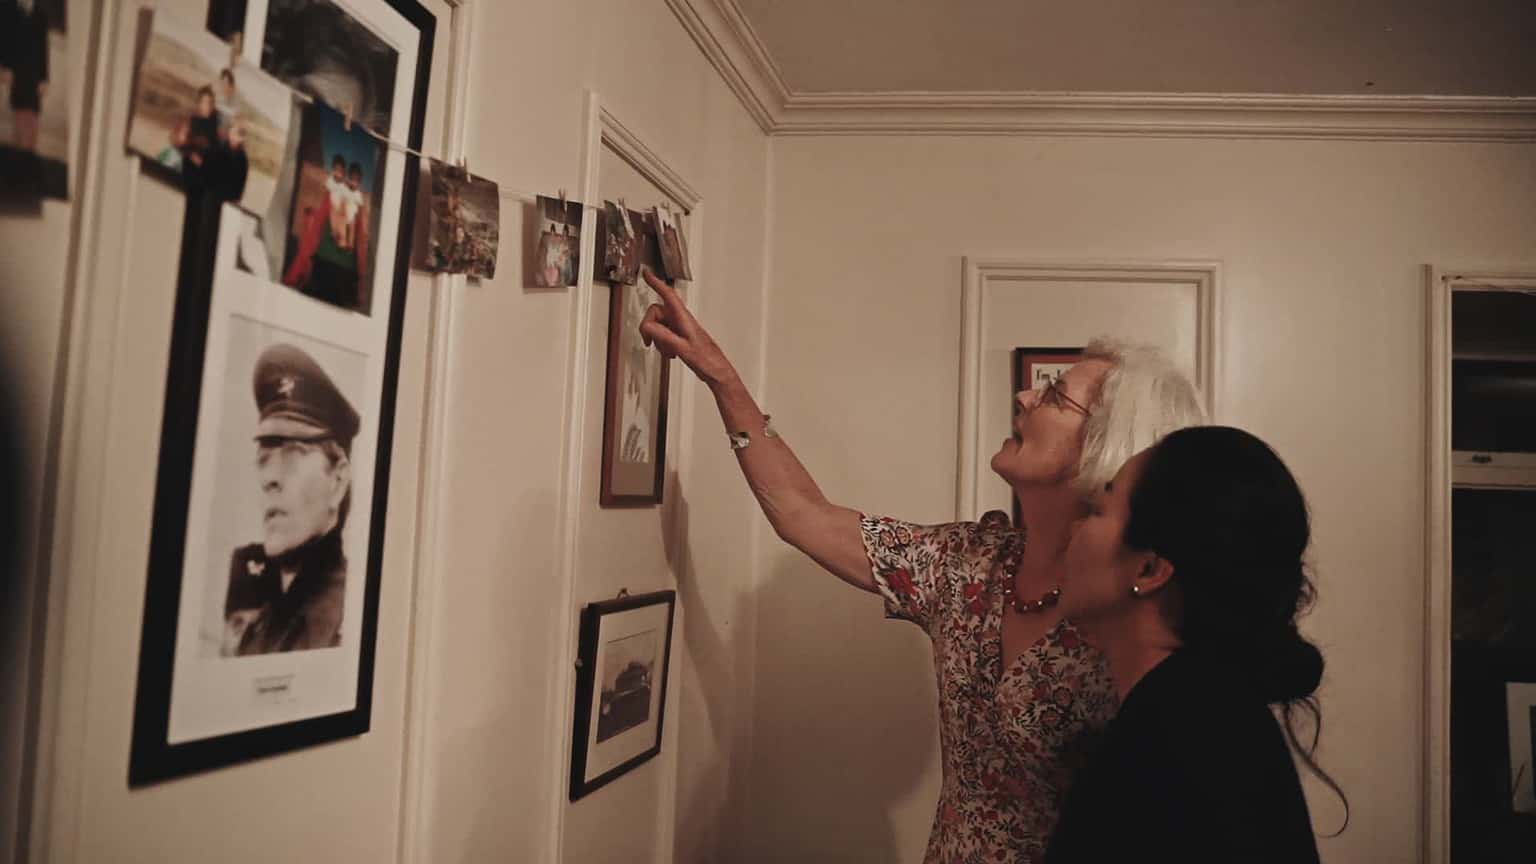 Ladies admiring pictures on the wall.